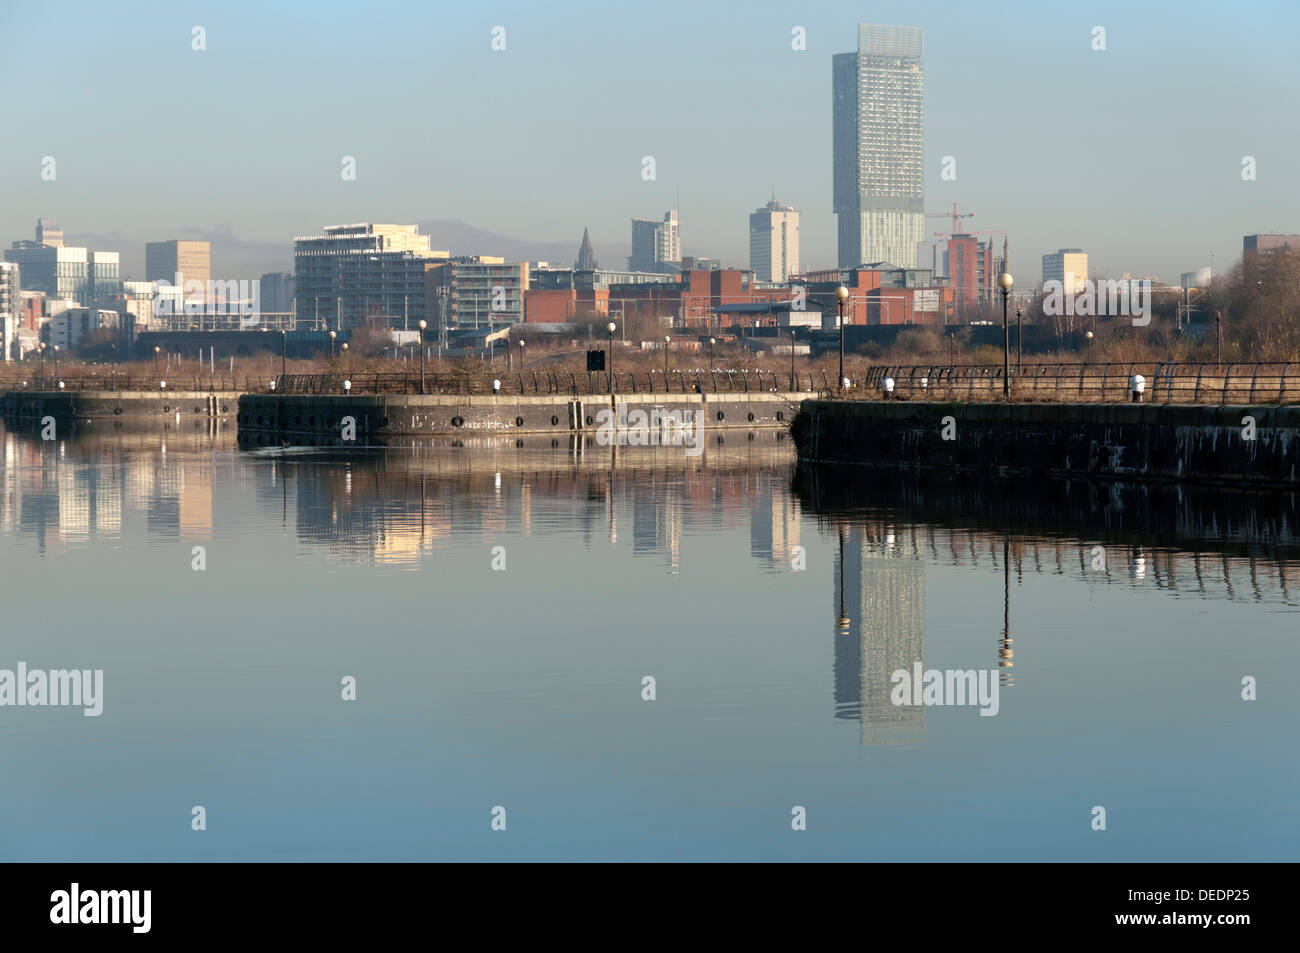 City centre skyline over the River Irwell (Manchester Ship Canal), Manchester, England, UK.  Beetham Tower on right. - Stock Image